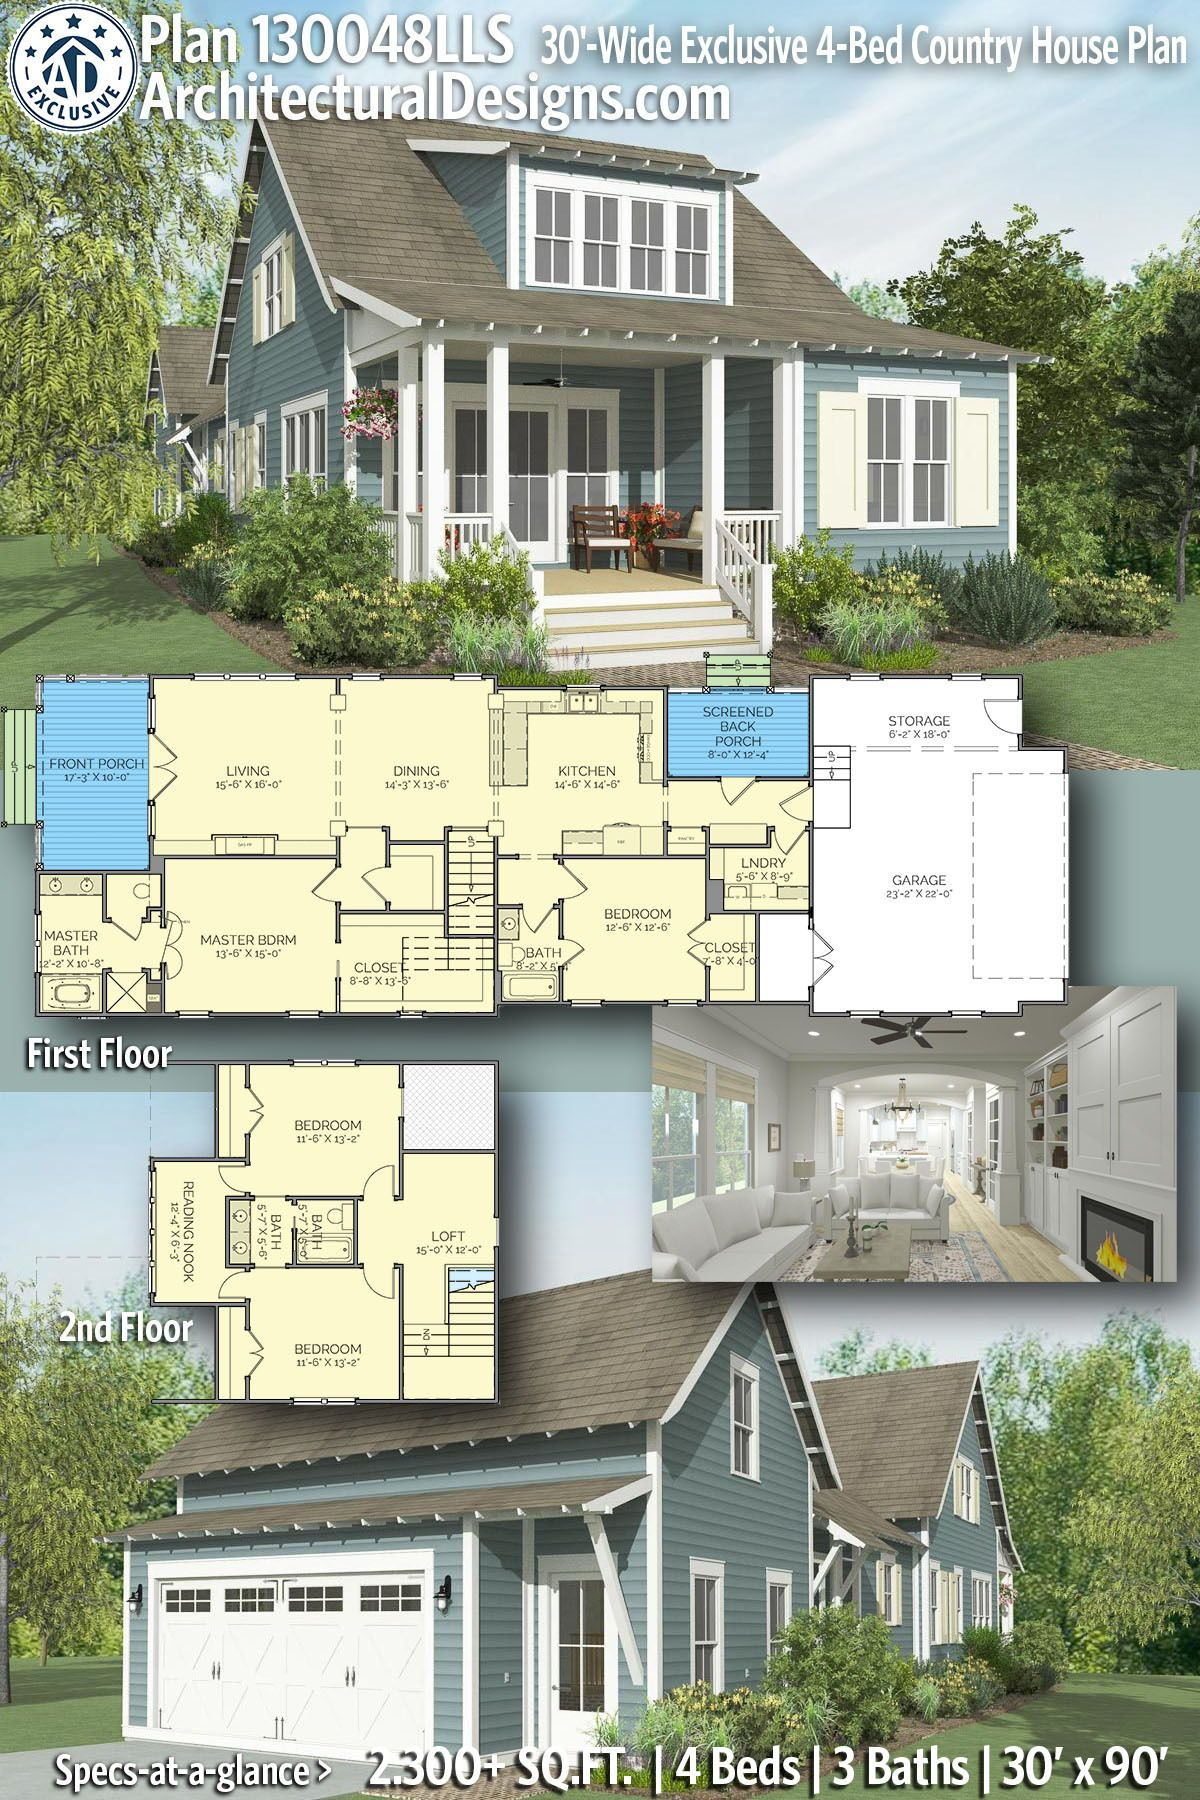 Plan 130048lls 30 Wide Exclusive 4 Bed Country House Plan In 2020 Vacation House Plans Country House Plan Coastal House Plans